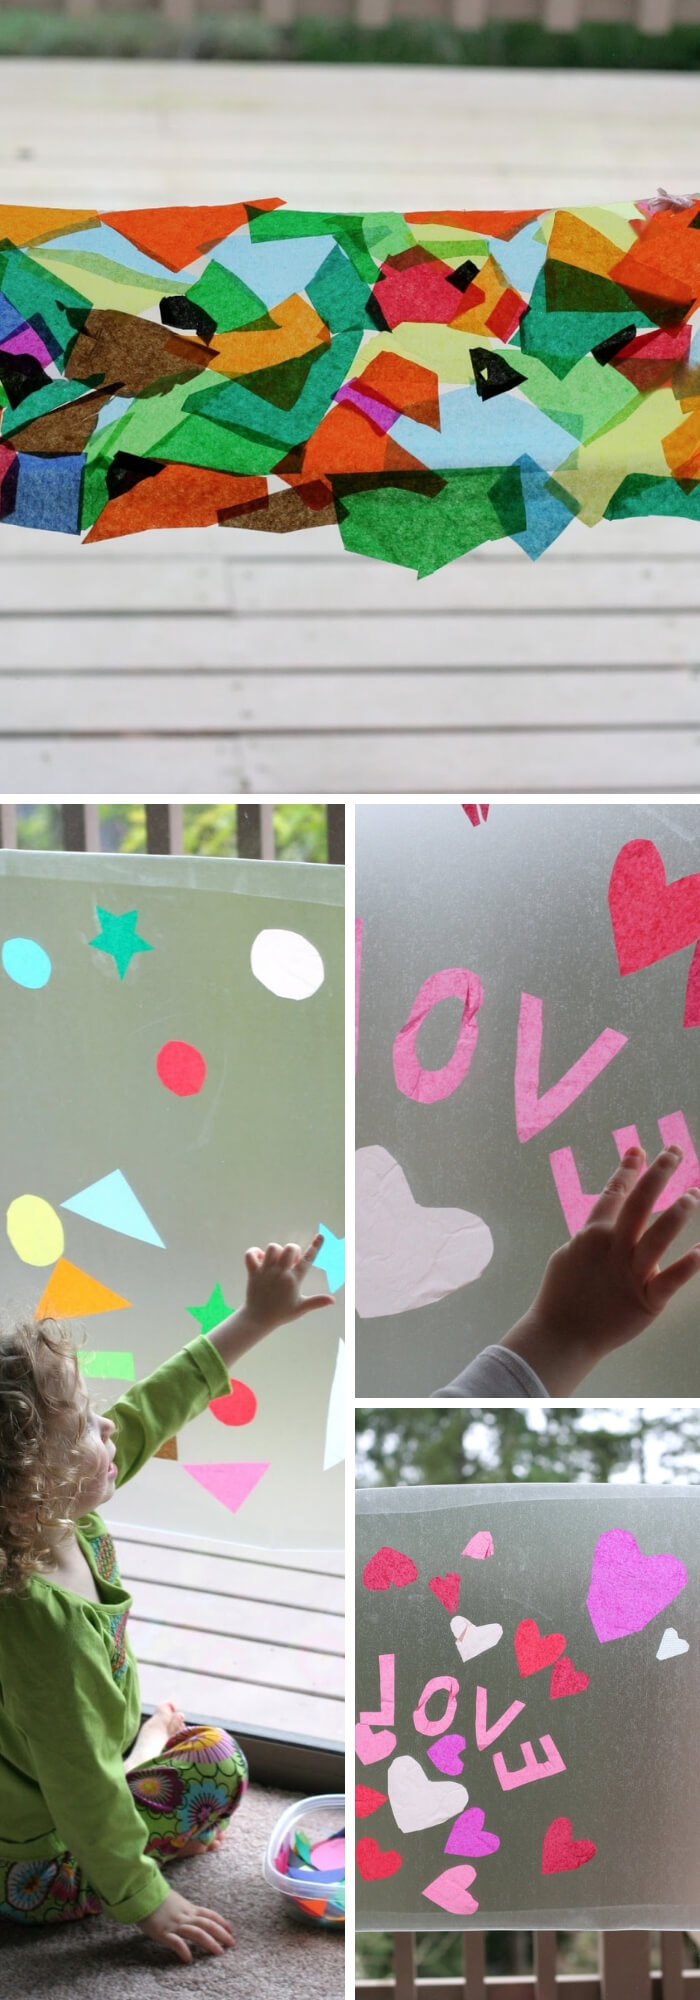 Children's Holiday Craft Ideas – Faux Stained Glass Valentine's Day Window Hangings | Contact Paper Window Art